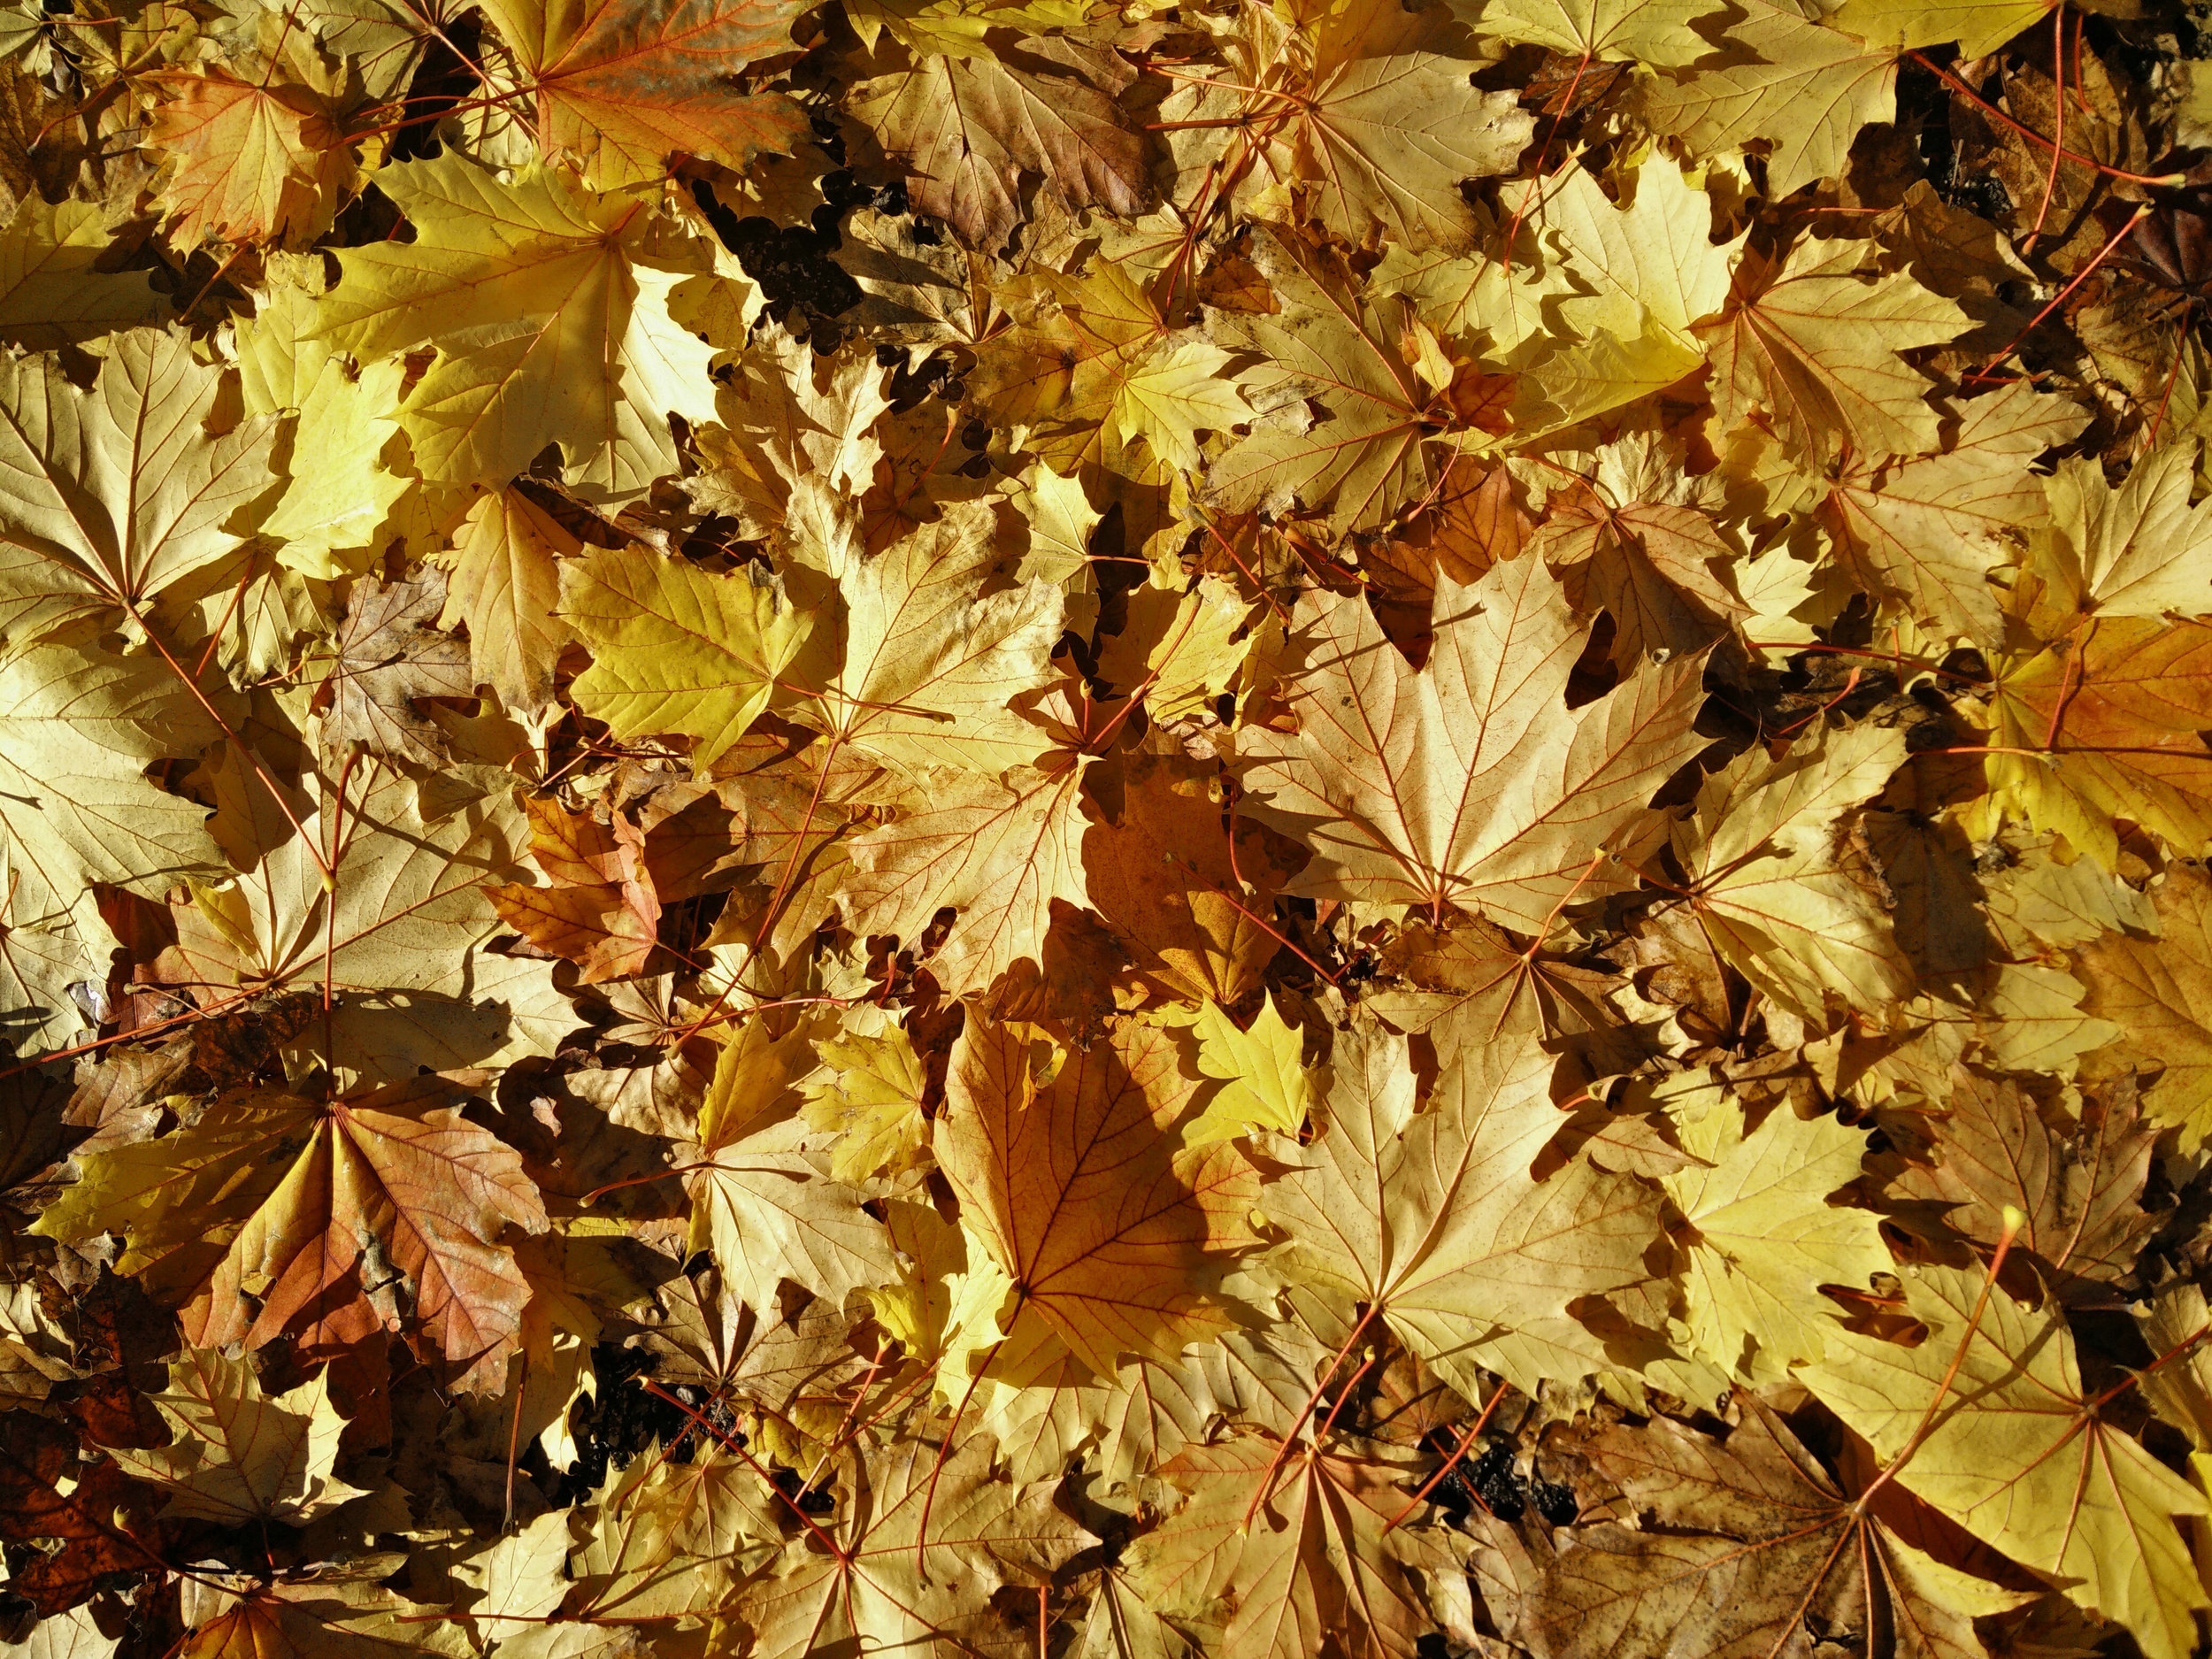 Fall leaves in a pile.